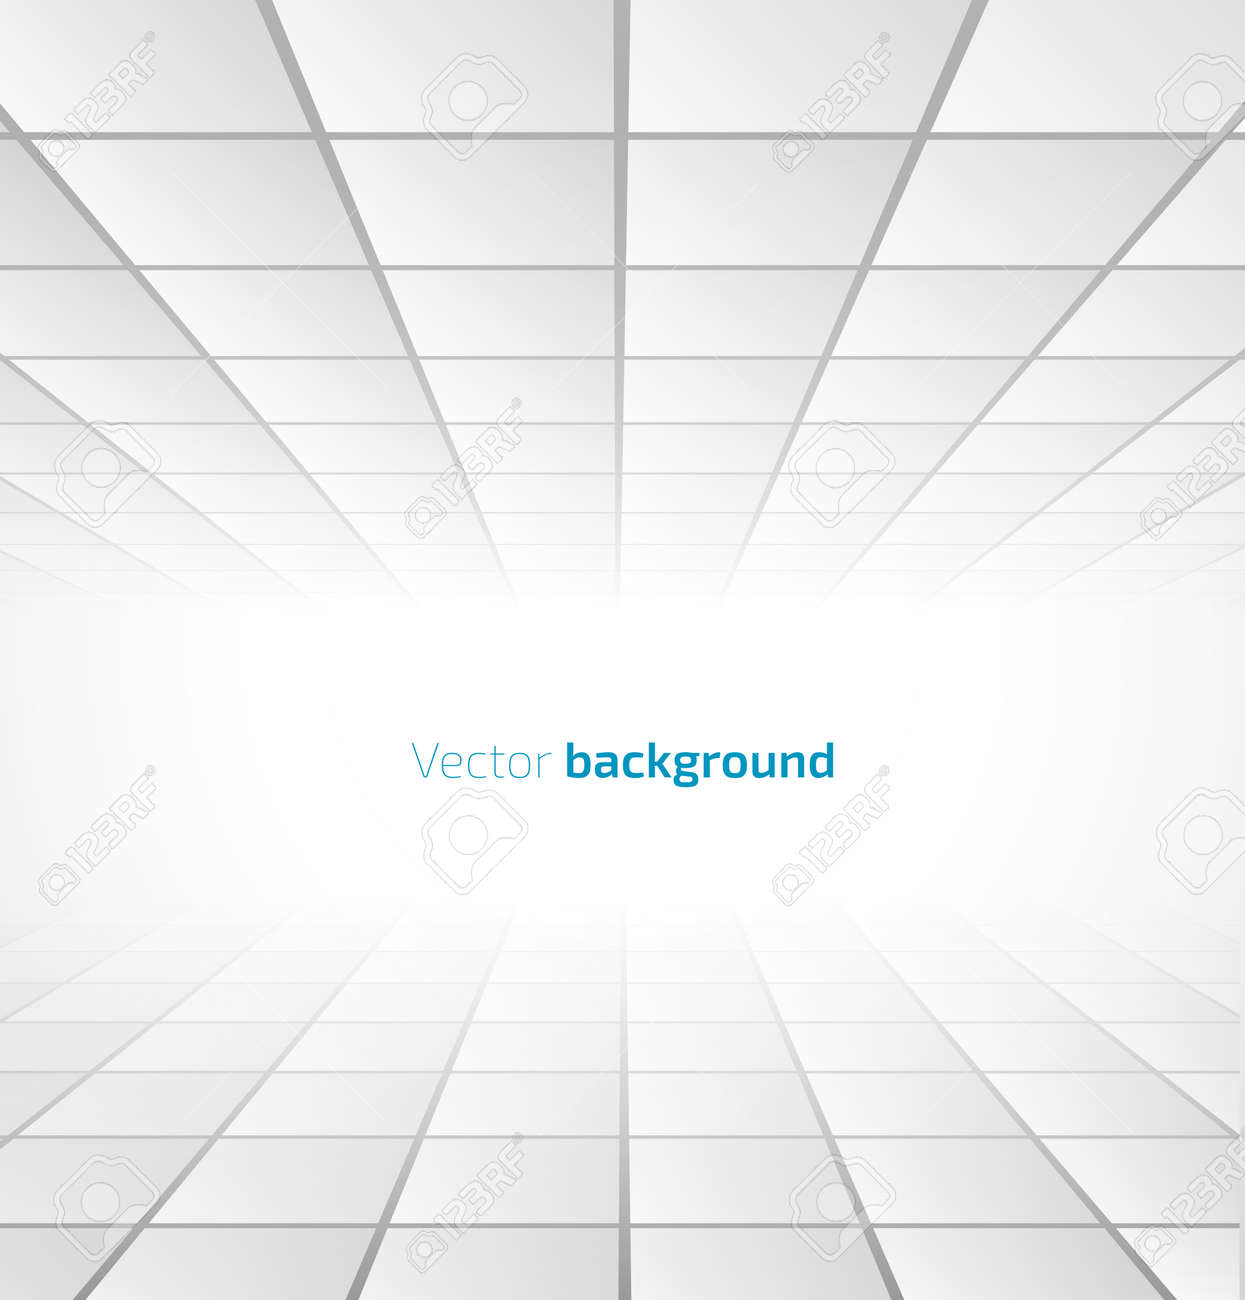 Abstract white tiled background with a perspective. Vector illustration - 34006651